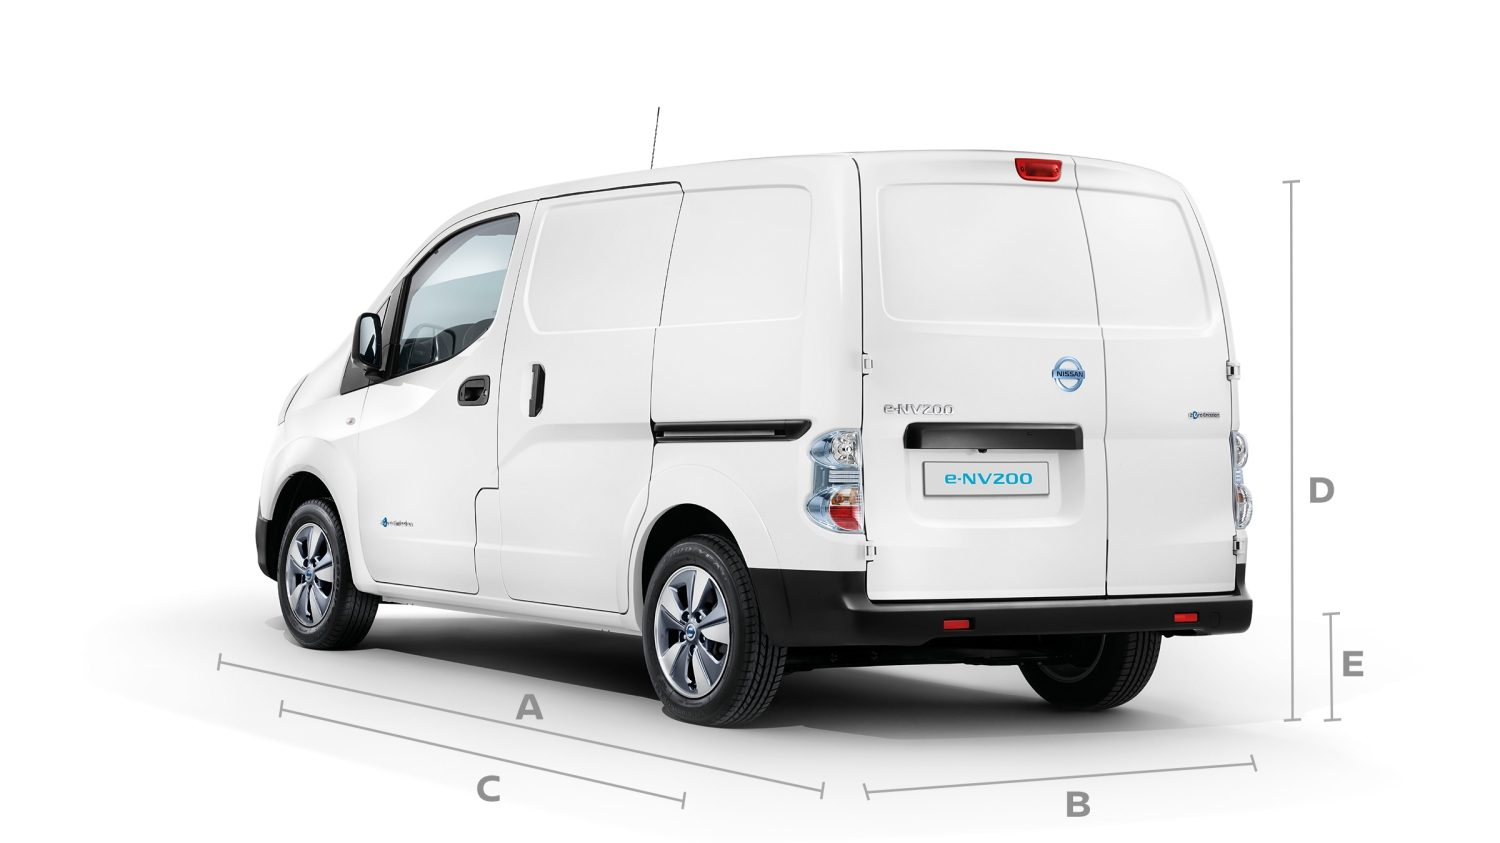 New Nissan e-NV200 3/4 rear with lines to show dimensions